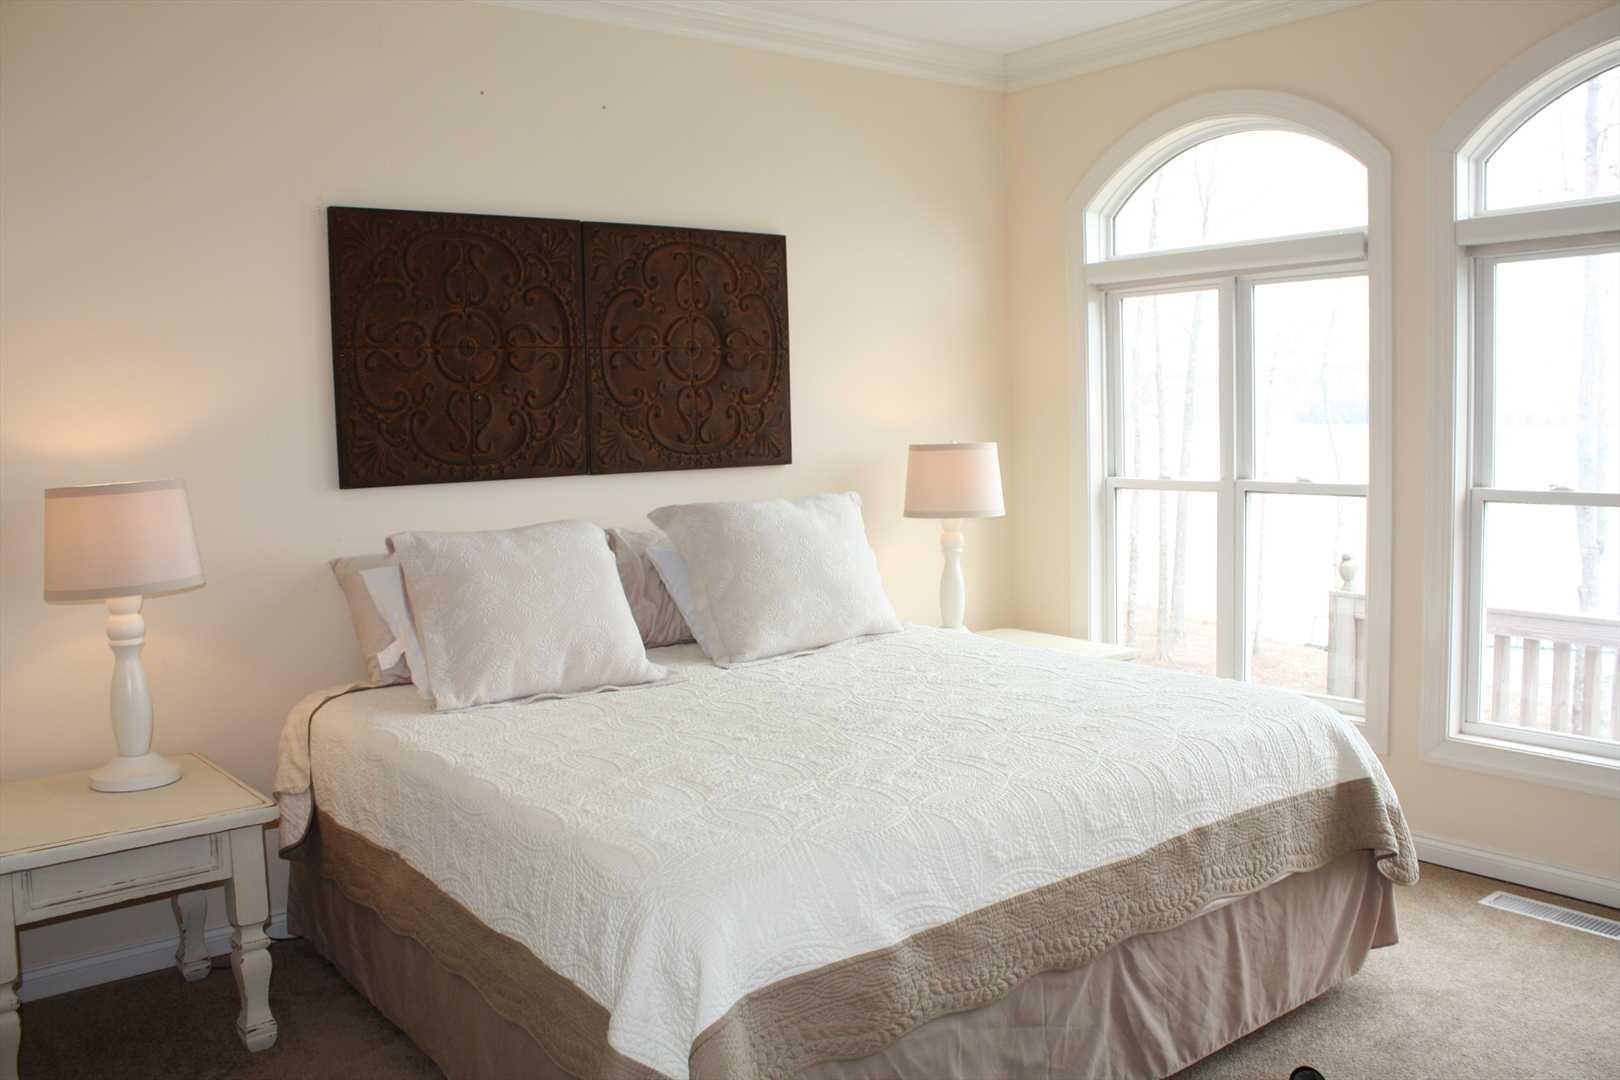 Master bedroom - king size bed